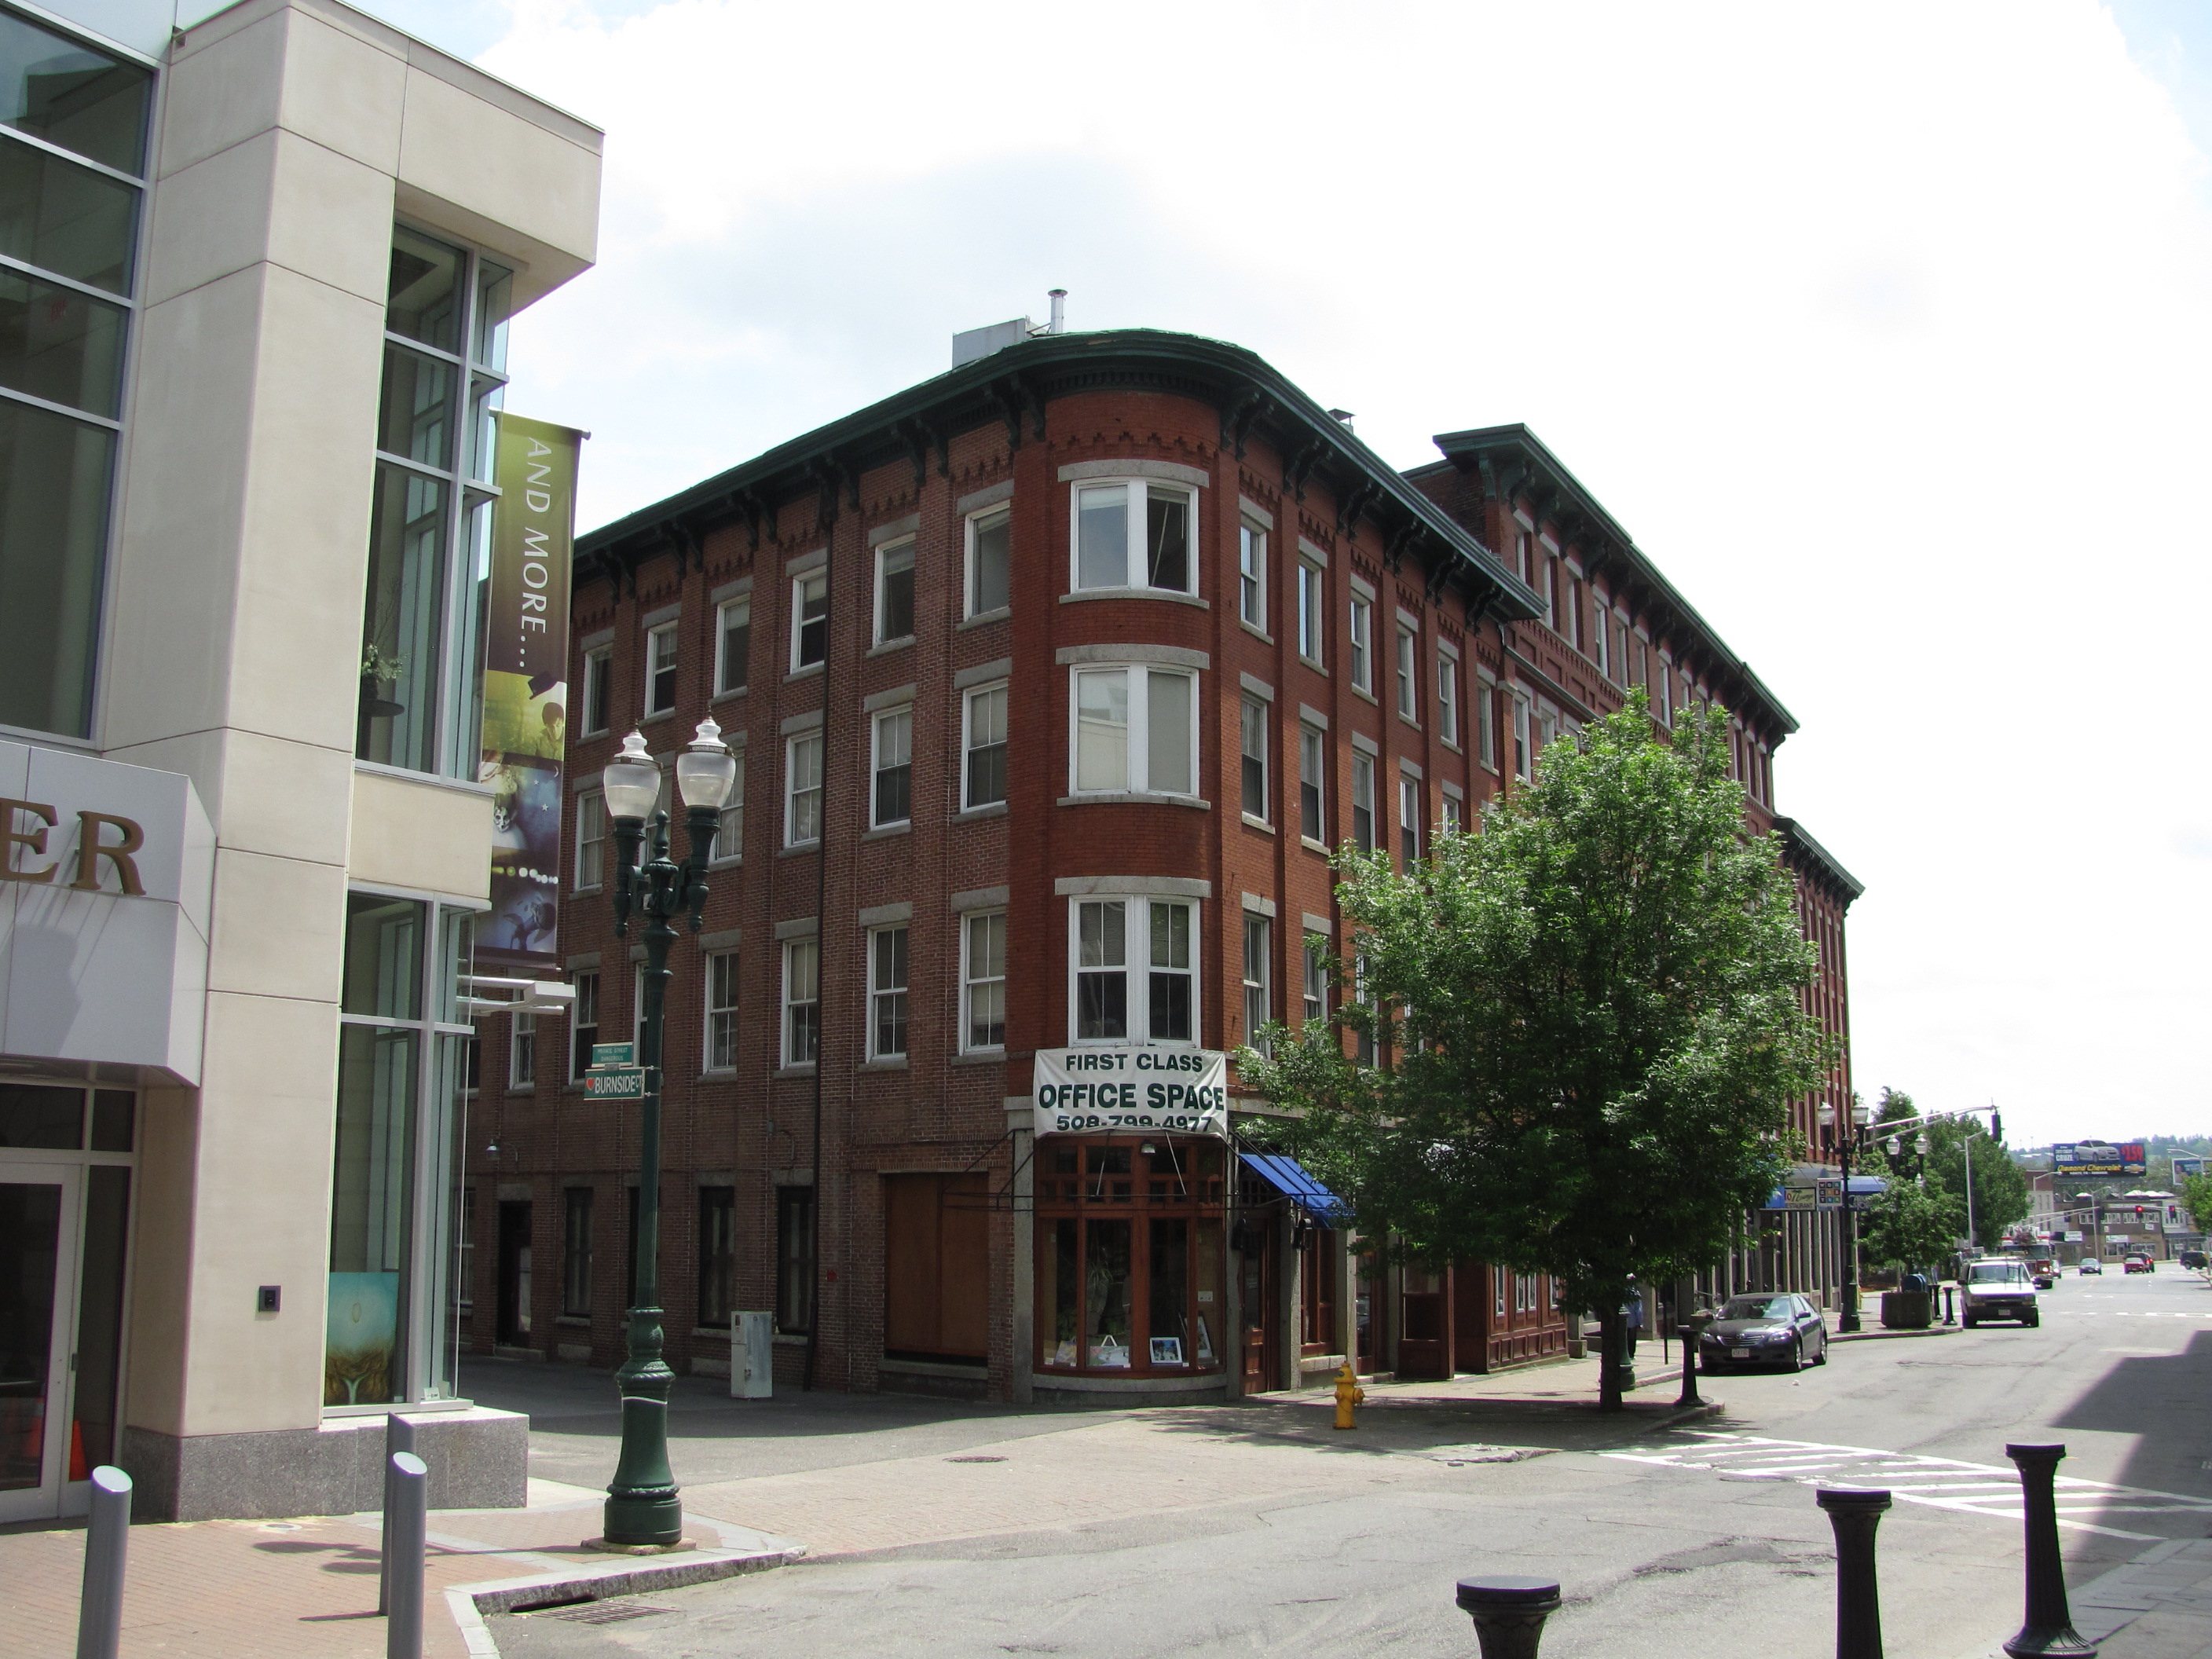 Filestevens' Building, Worcester Majpg  Wikimedia Commons. Refinance To Pay Off Credit Cards. Commercial Solar Leasing Alternatives To Soda. Place Of Marketing Mix Waco Foundation Repair. Cloud Application Delivery Online Lvn To Bsn. Total Security Management Ev Ssl Certificates. Hp Servers For Virtualization. Website Monitoring Software Reviews. Discount House Insurance College Park College